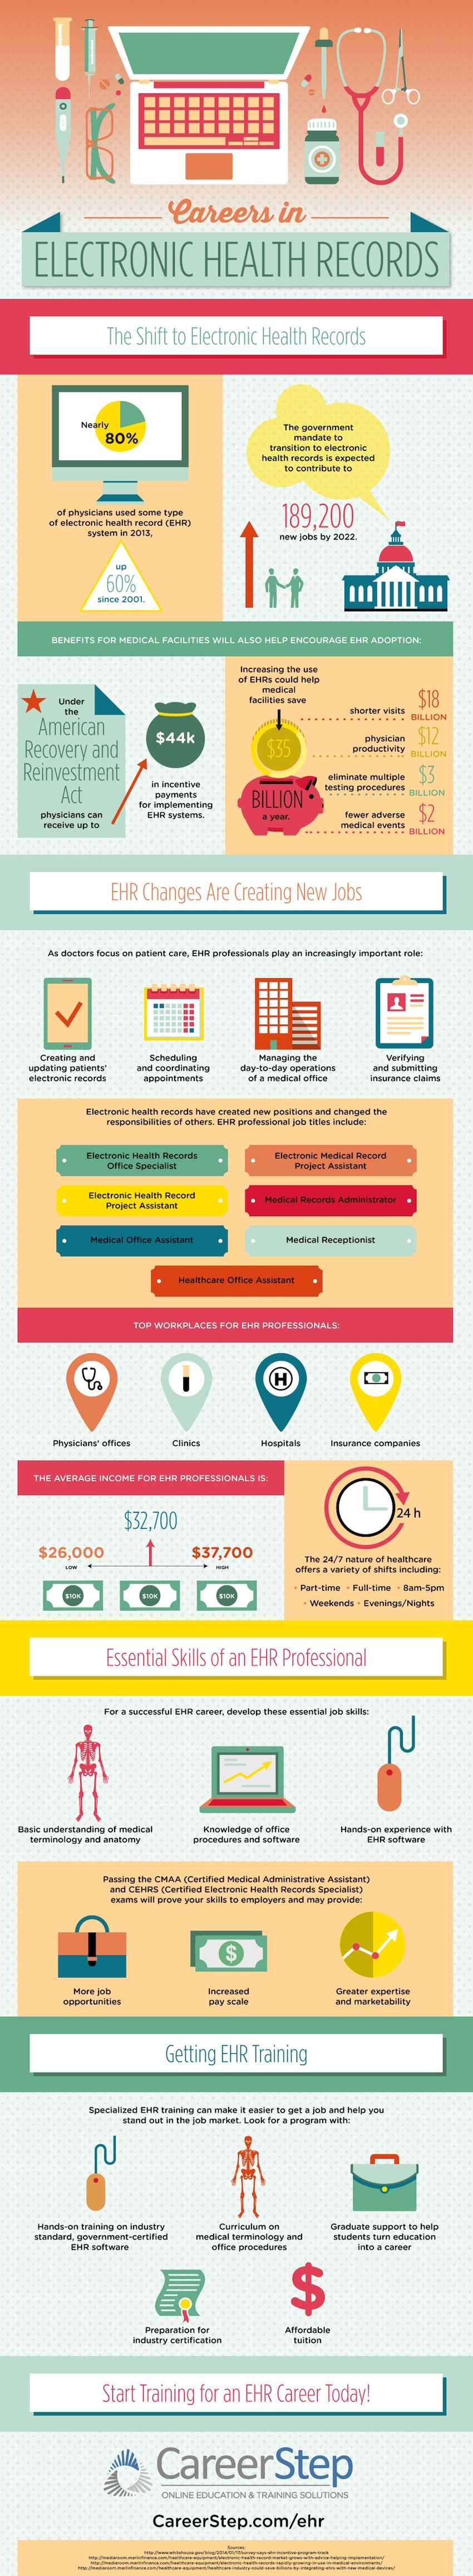 this infographic highlights the changes electronic health